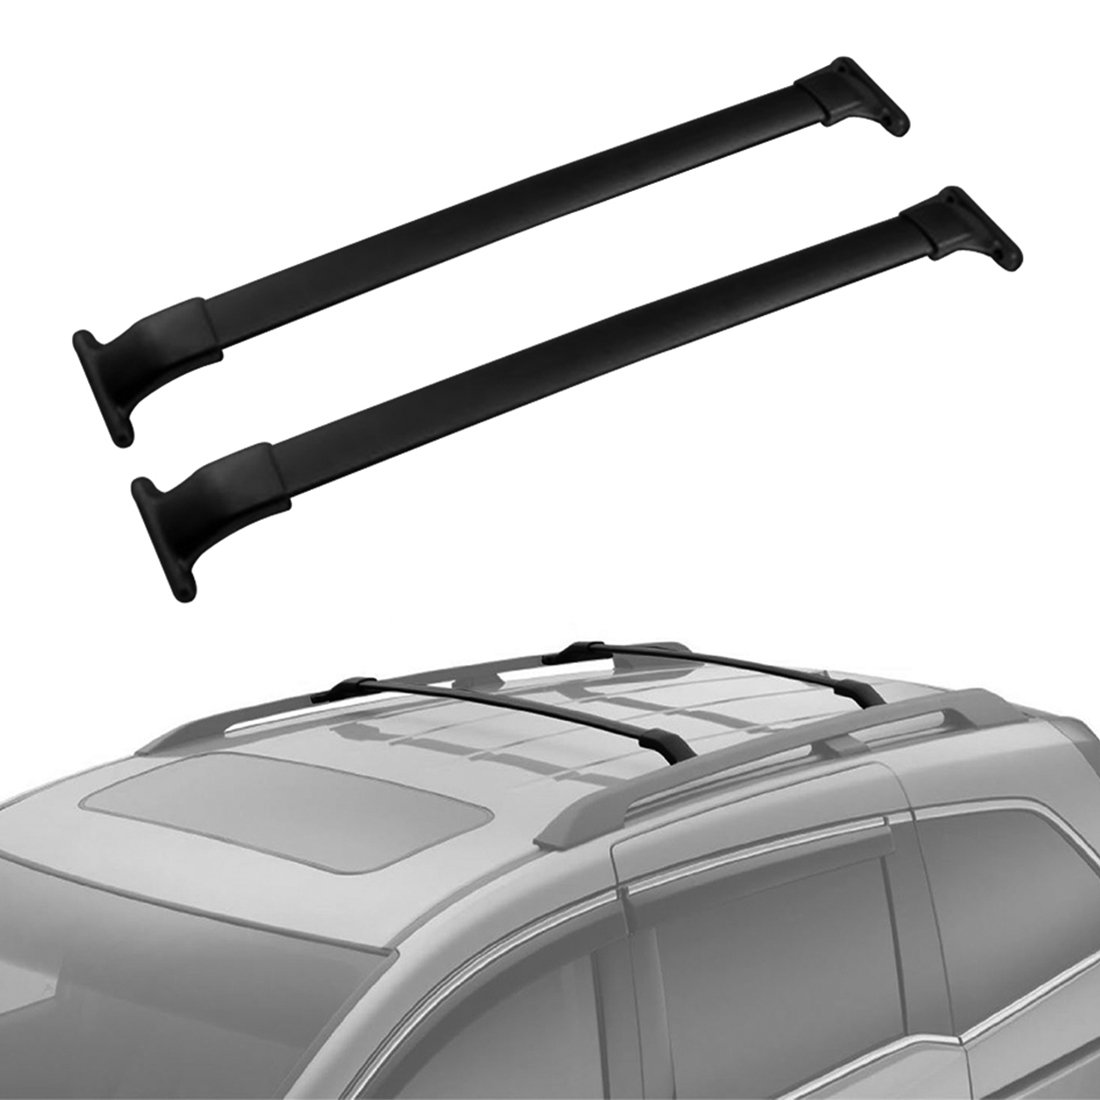 AUXMART Roof Rack Corss Bars OE Style Crossbars Fit for 2011-2017 Honda Odyssey, Aluminum Luggage Cargo Carrier Rooftop Rail Racks System Replacement for Canoe Bike Kayak